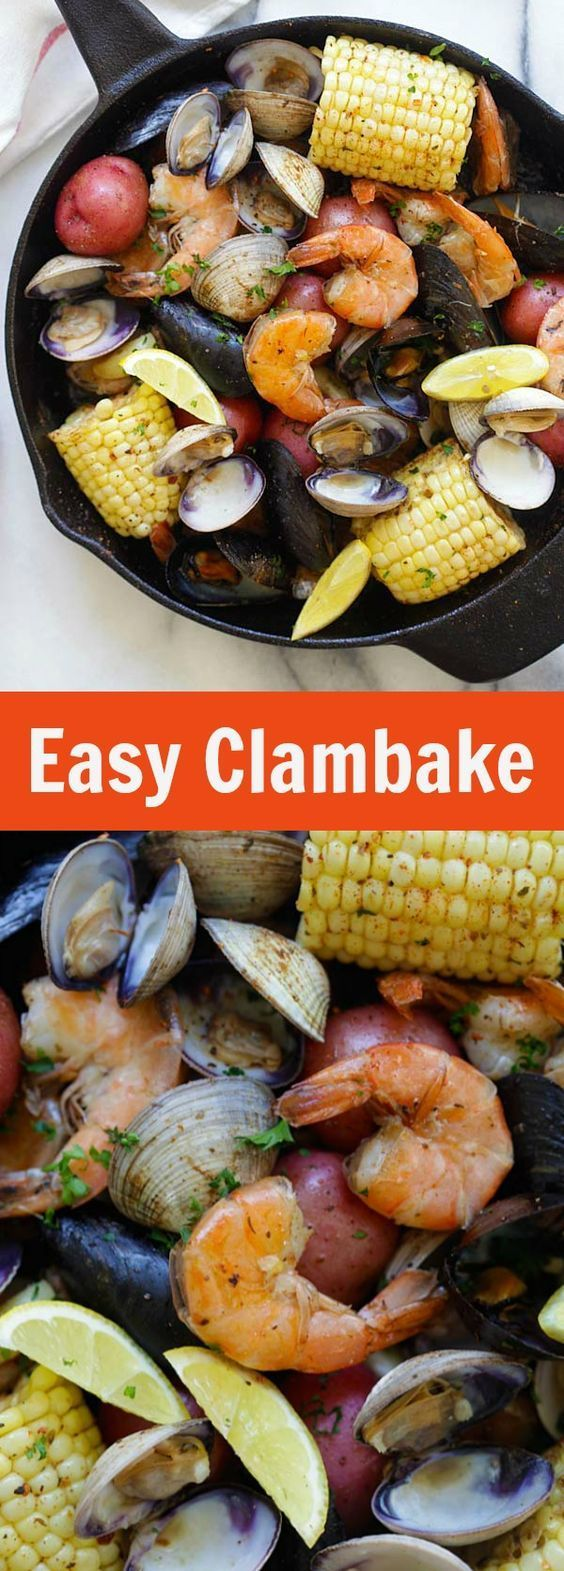 Clambake - the easiest and no-fuss clambake recipe ever, cooked on a stovetop with a skillet. Fresh, delicious and perfect for summer   http://rasamalaysia.com